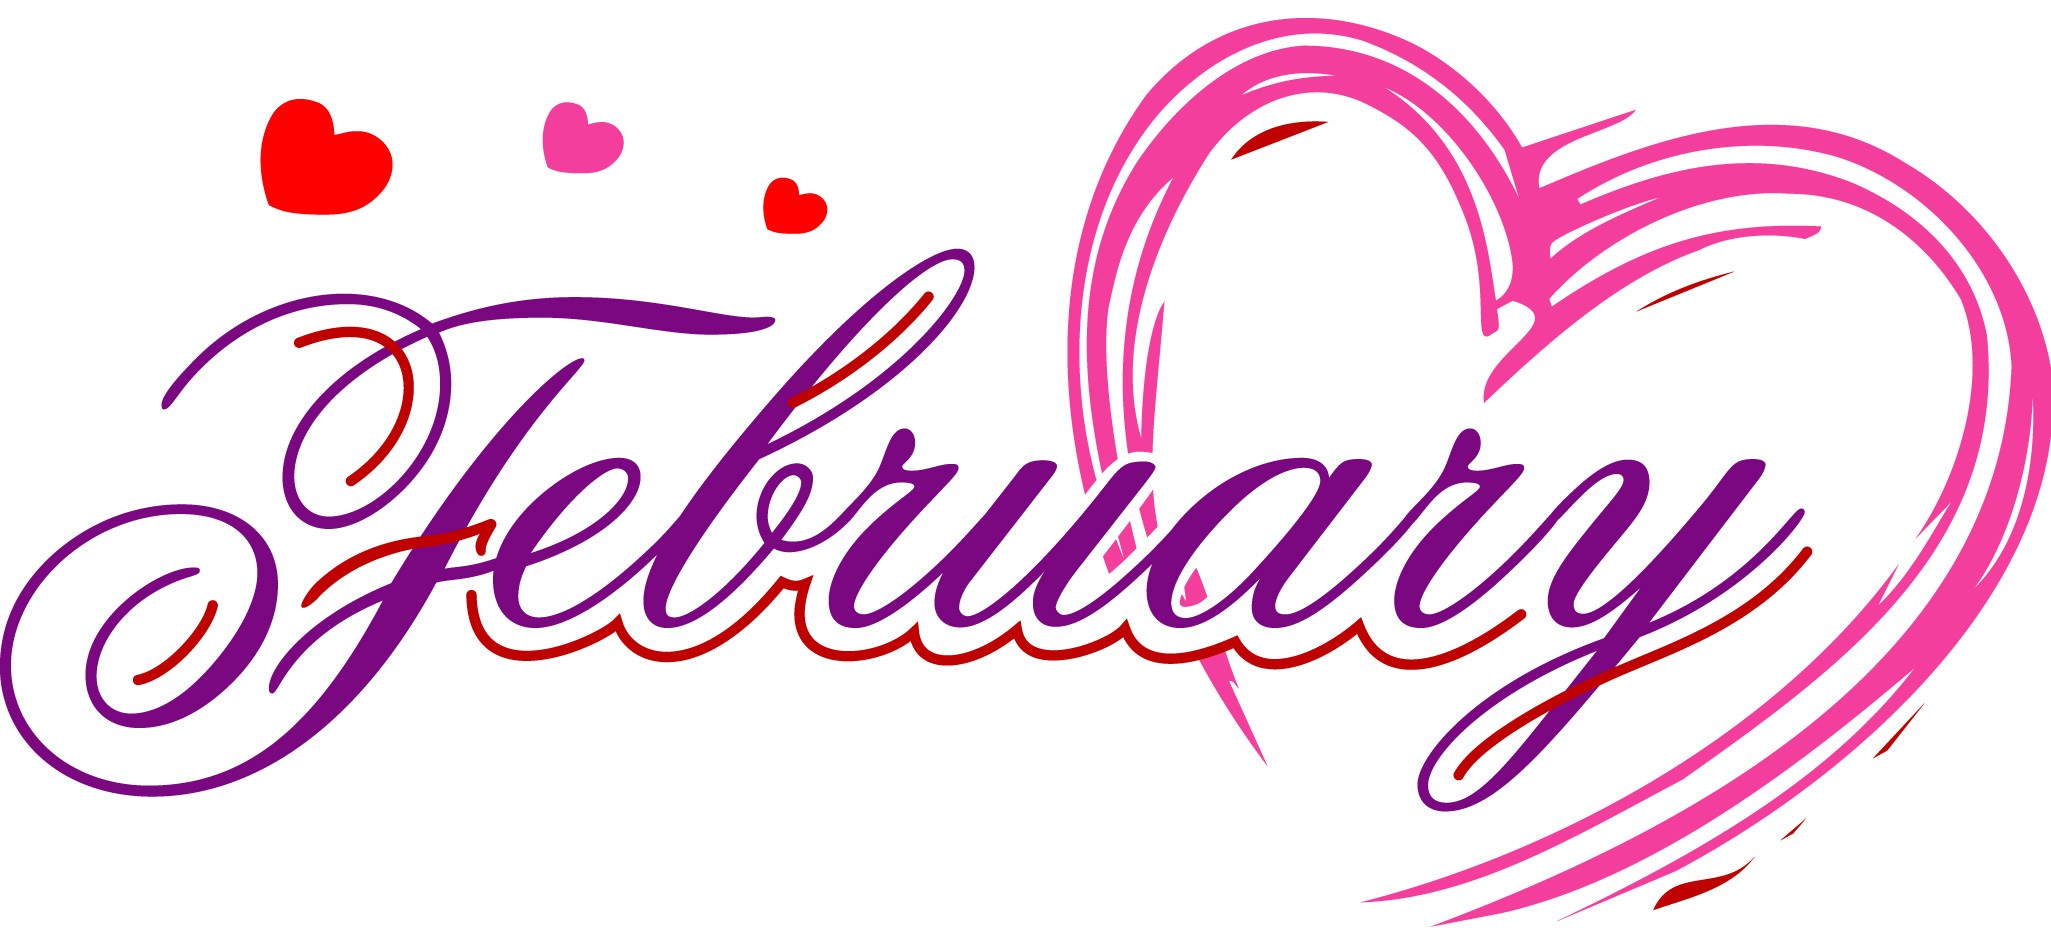 February clipart word.